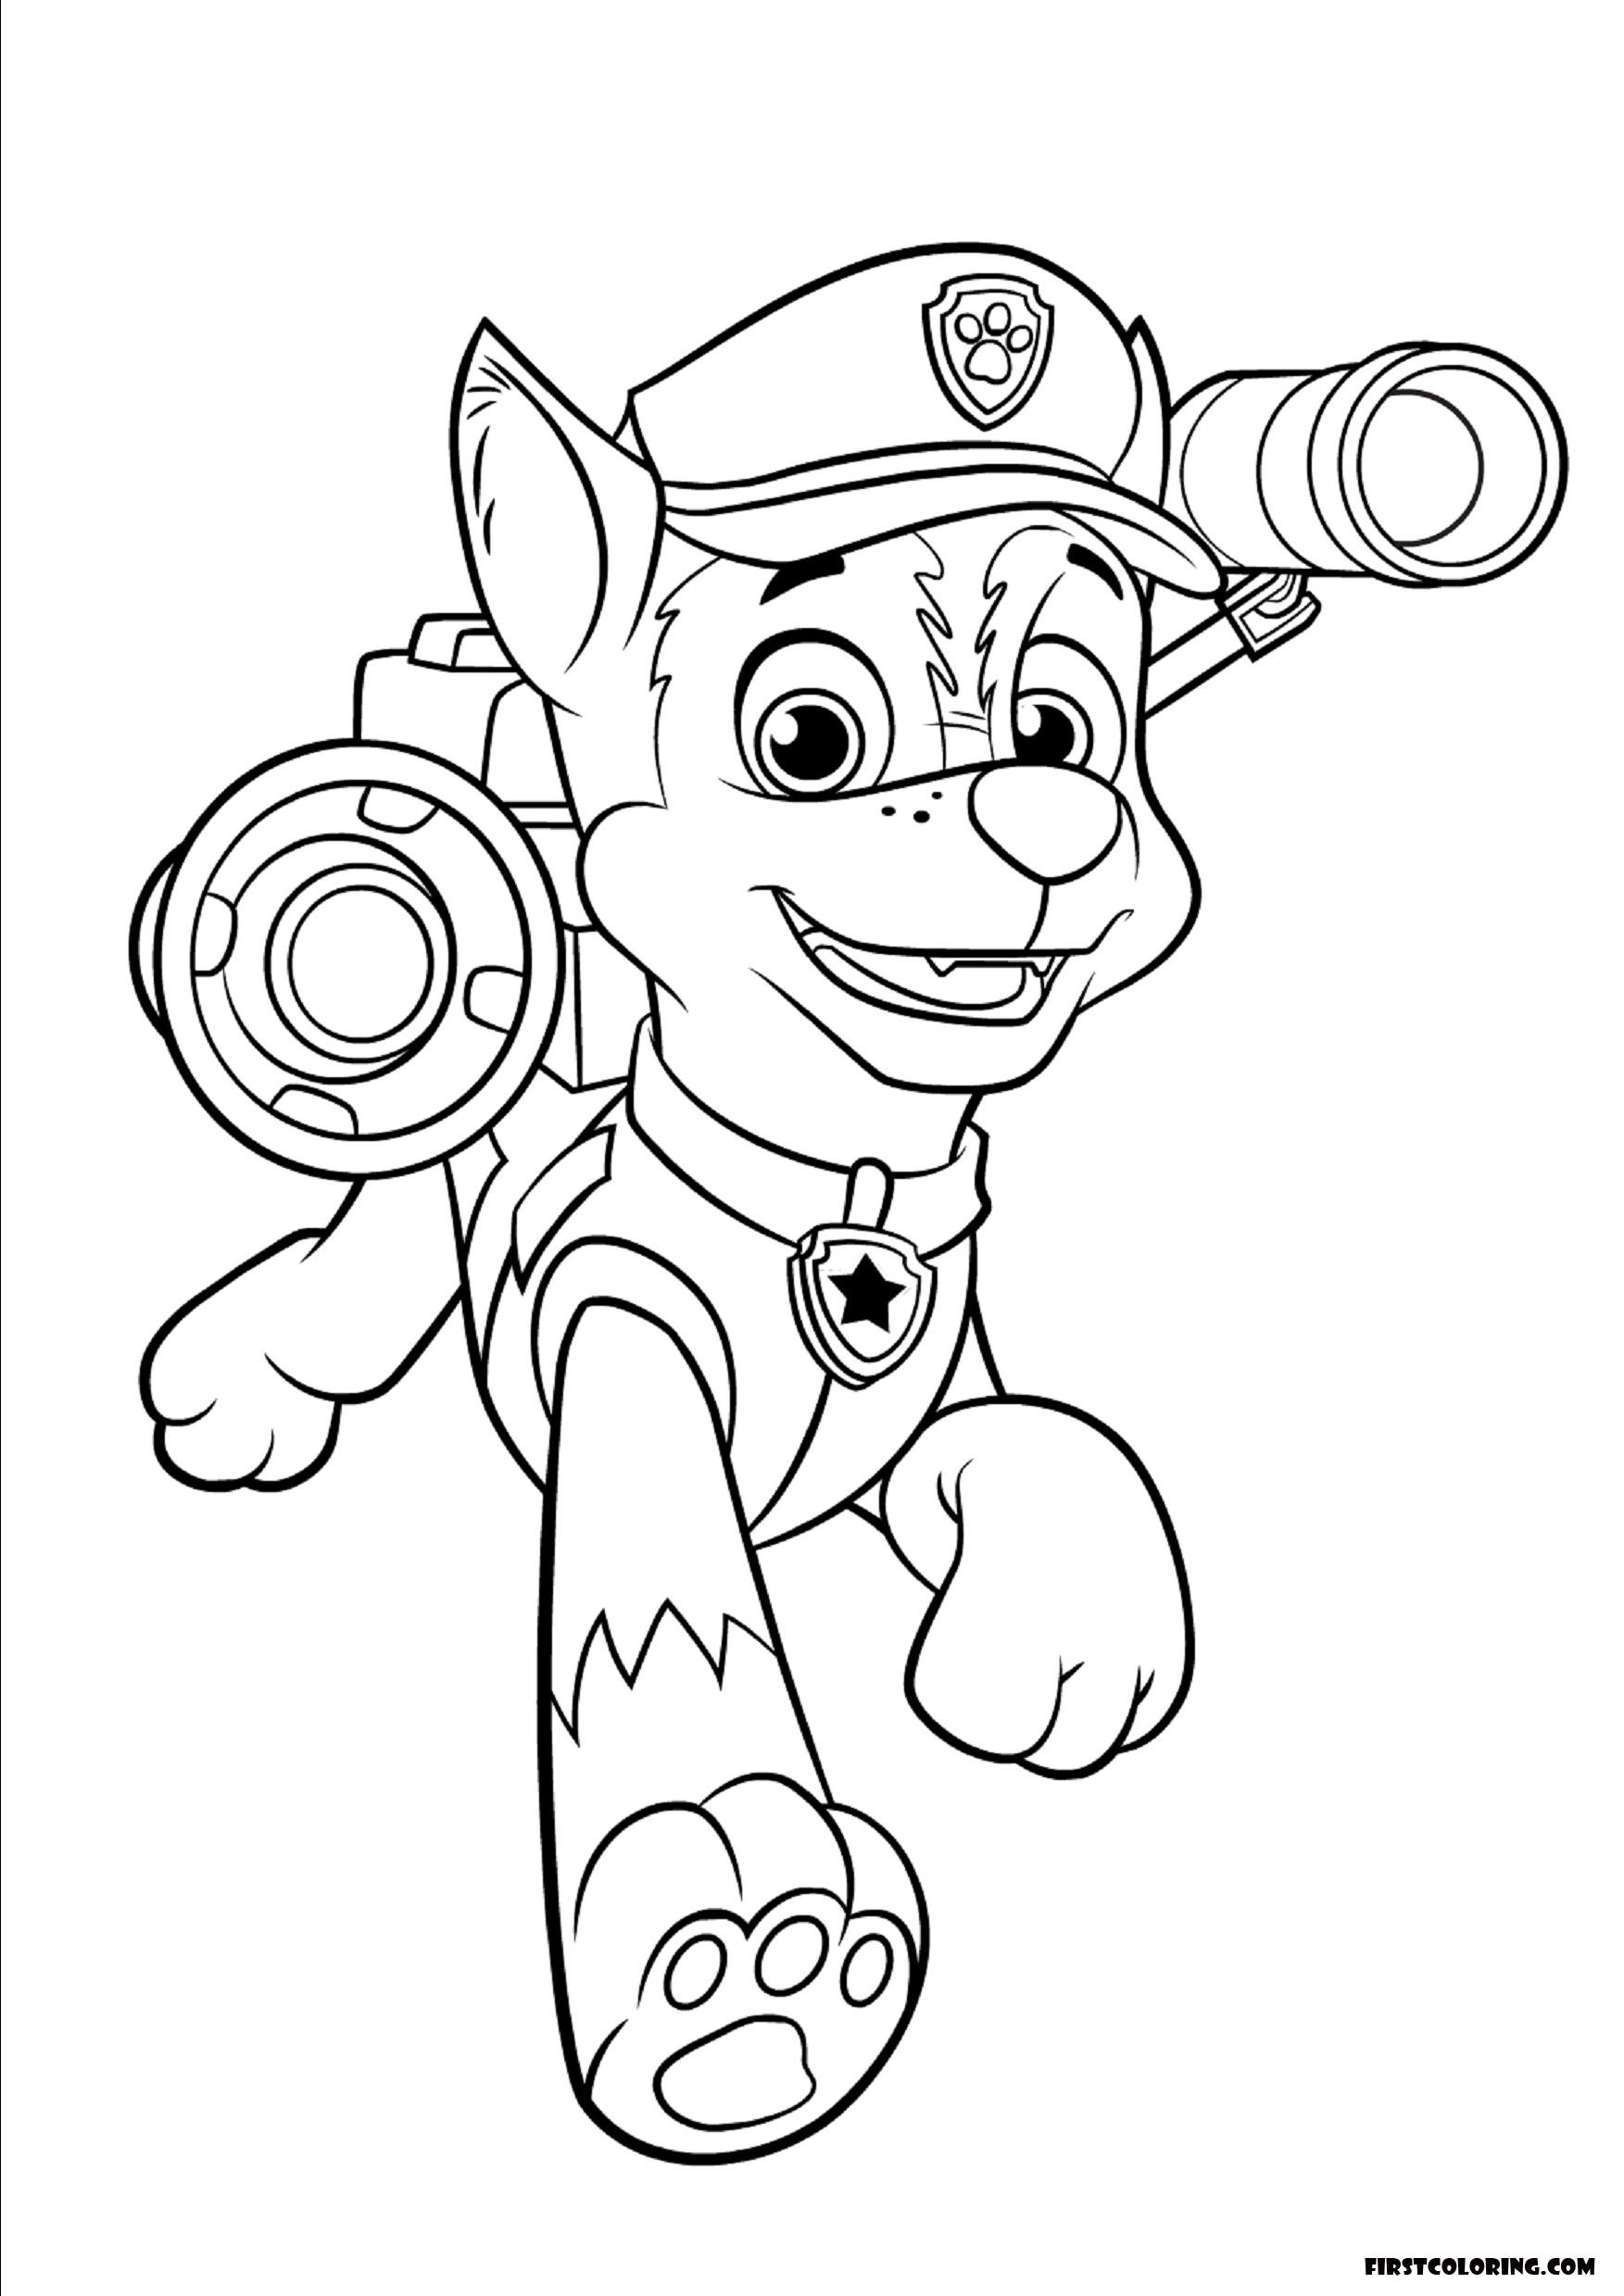 coloring paw patrol lookout paw patrol coloring sheet first coloring for our children coloring lookout paw patrol